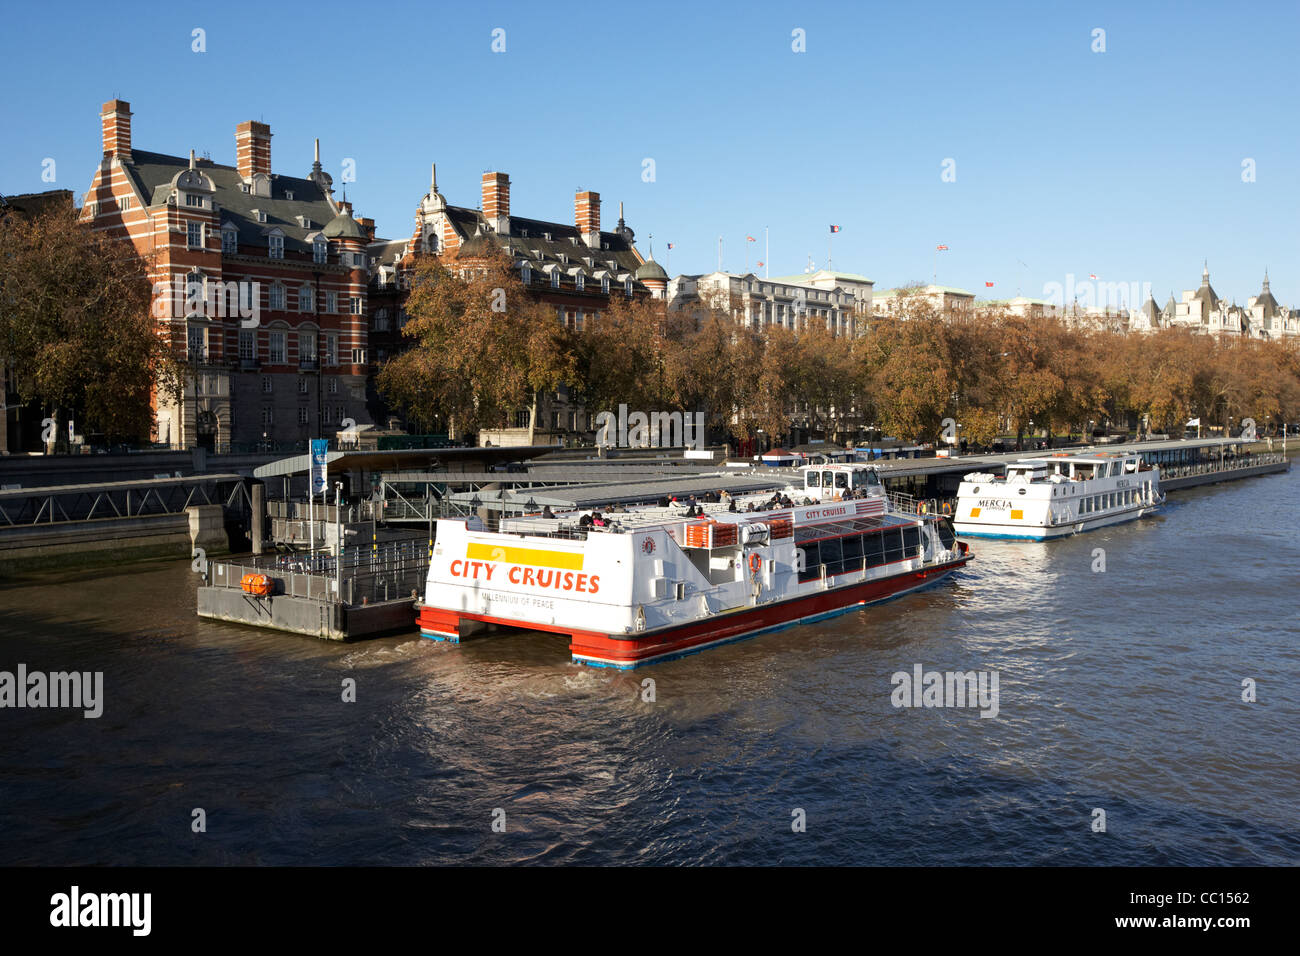 London river cruise boats at the westminster millennium pier on the river thames England UK United kingdom - Stock Image